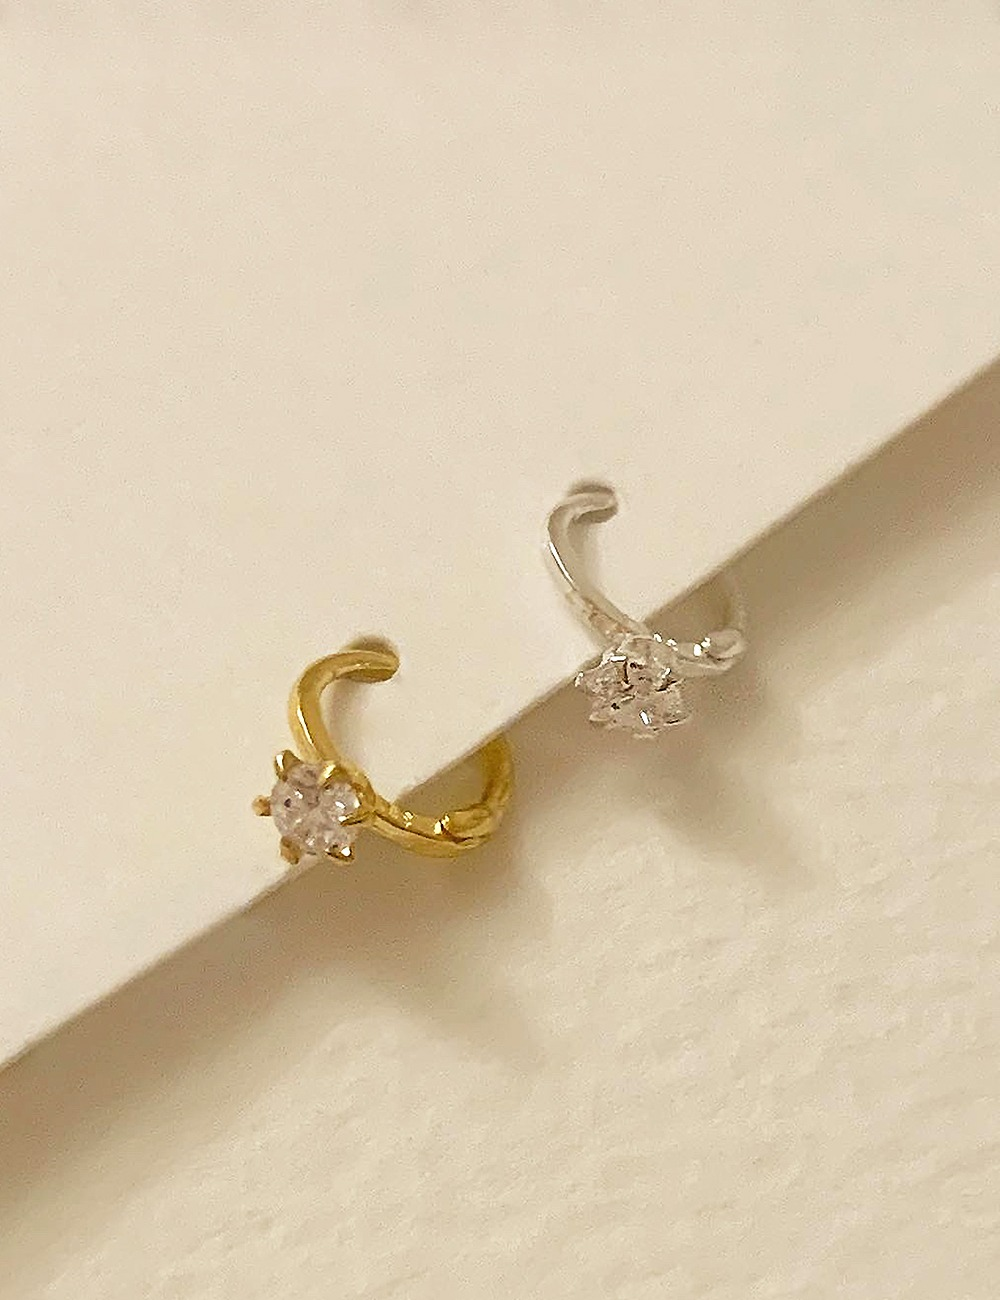 (silver 92.5) One cubic ring earring